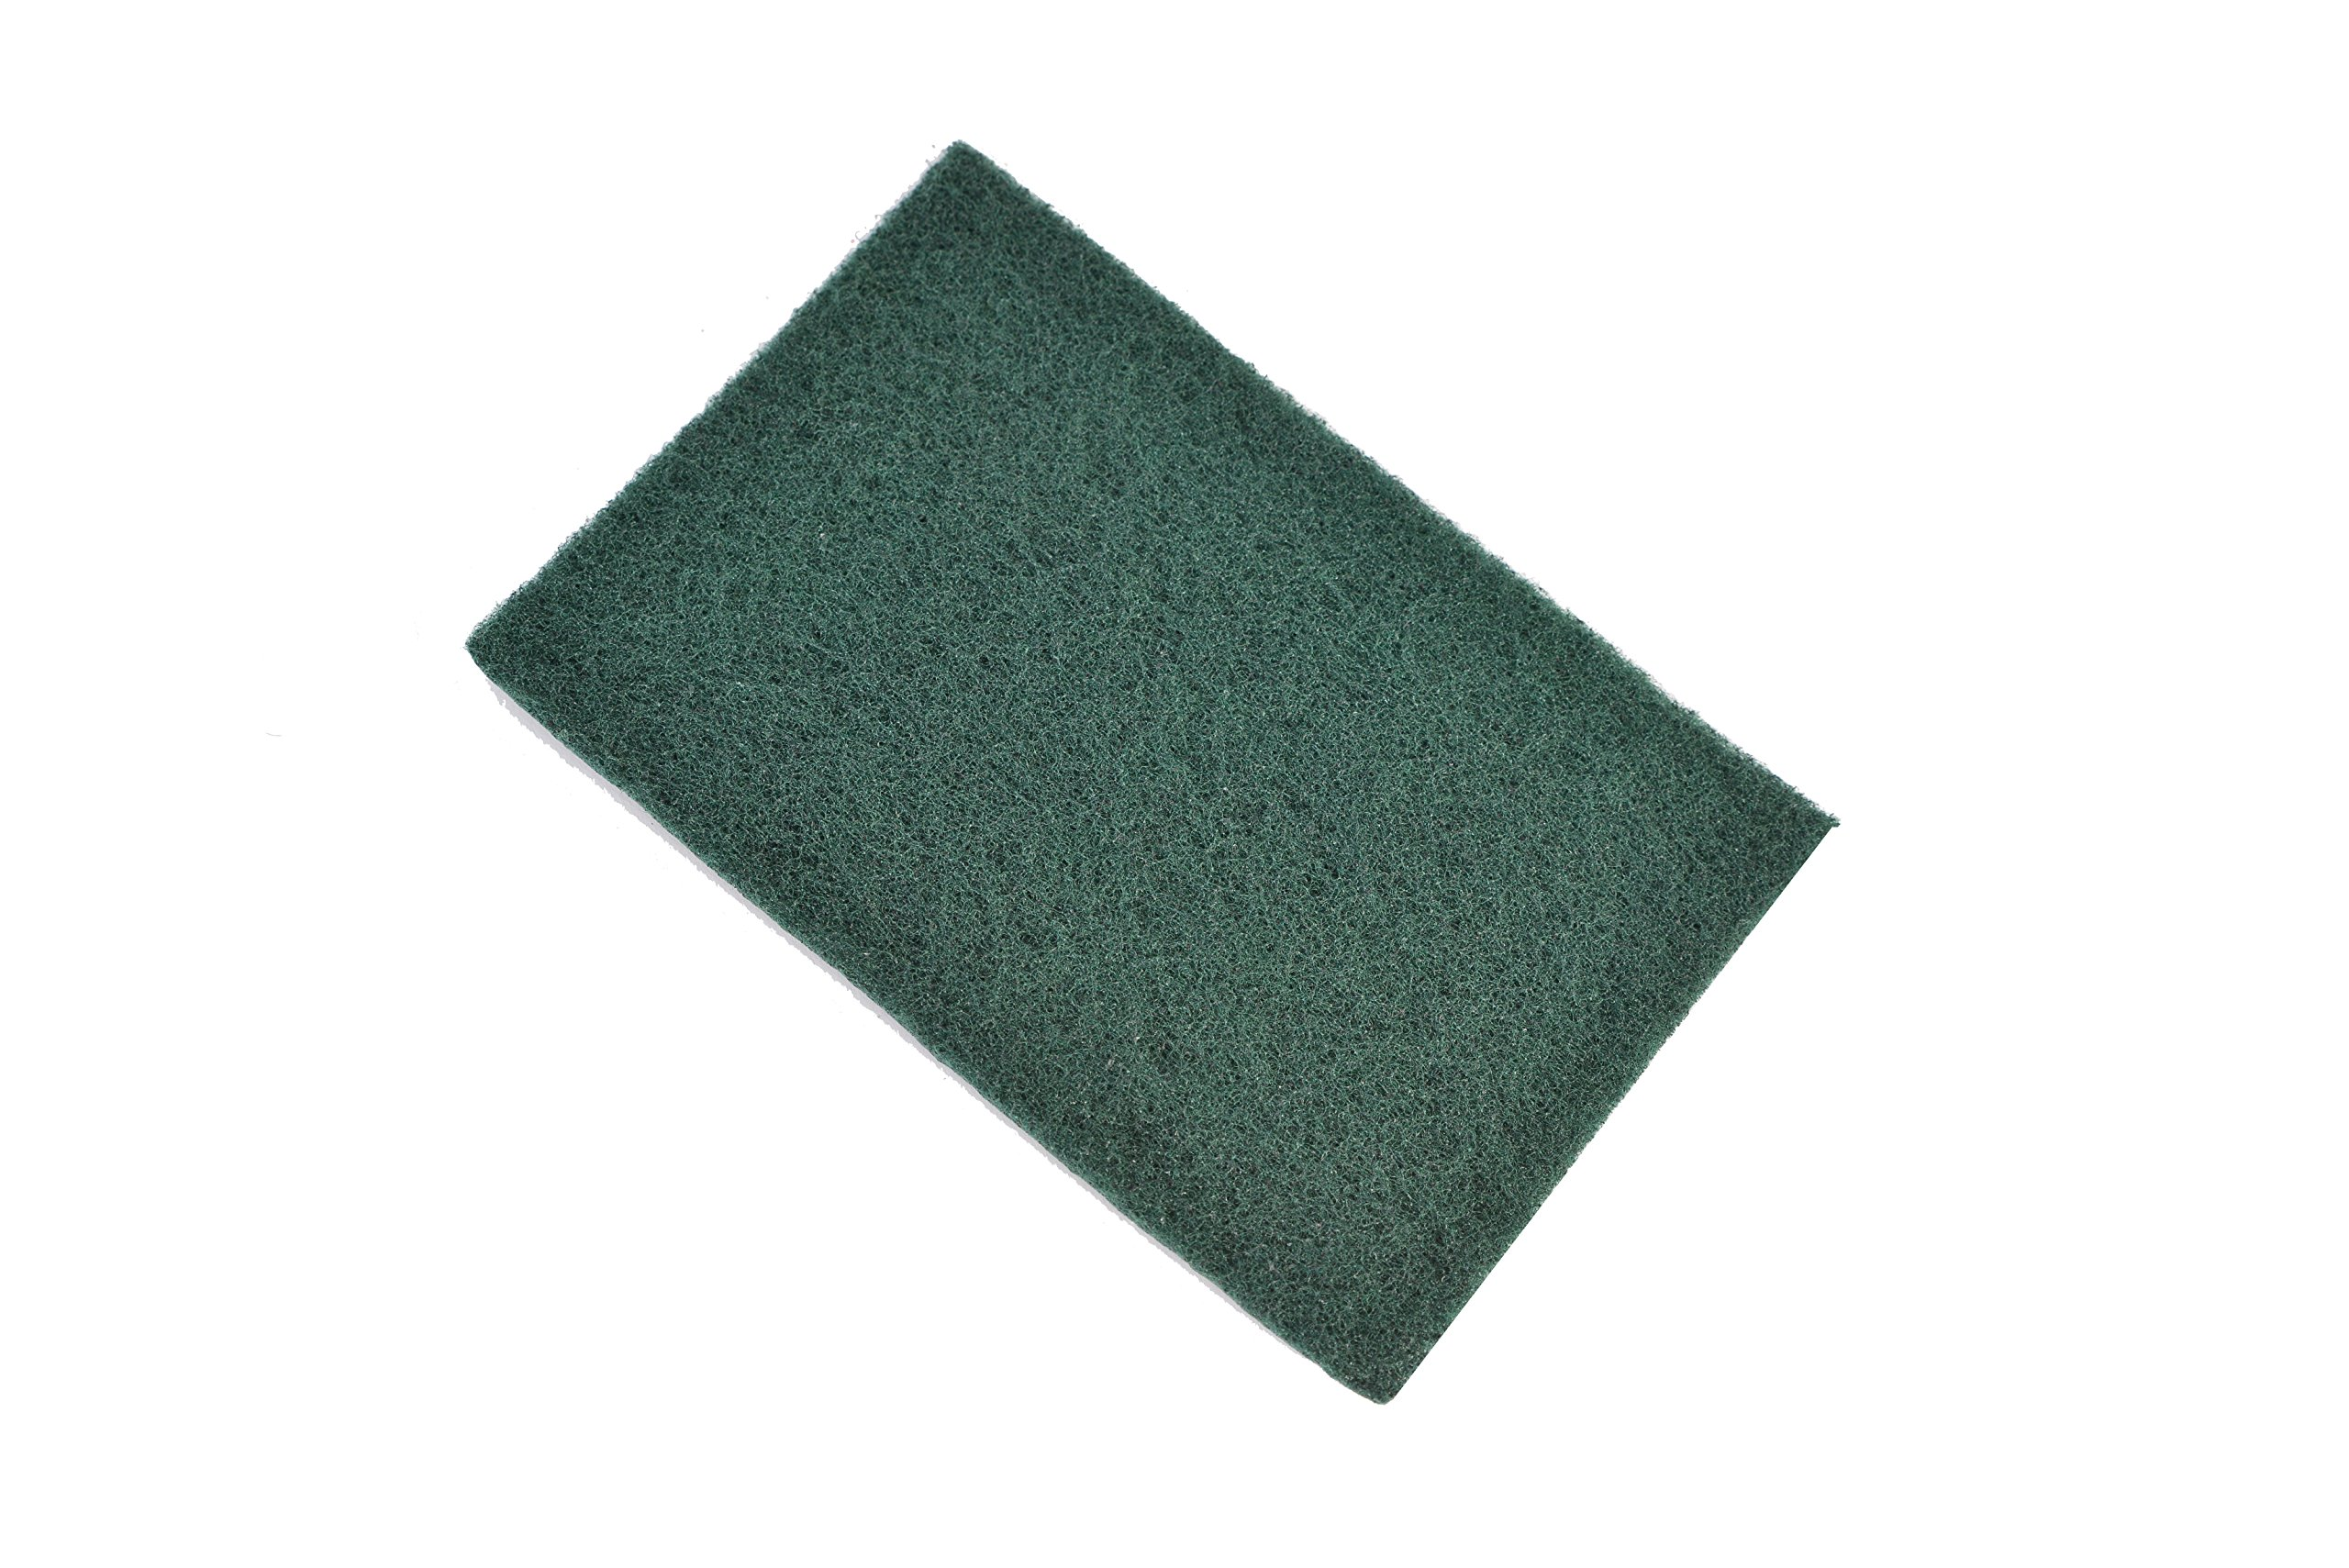 Janico ScrubX 3086 Heavy Duty Industrial Commercial Scouring Scrubber Pads, Green, #86 Green Pad, Pack of 60